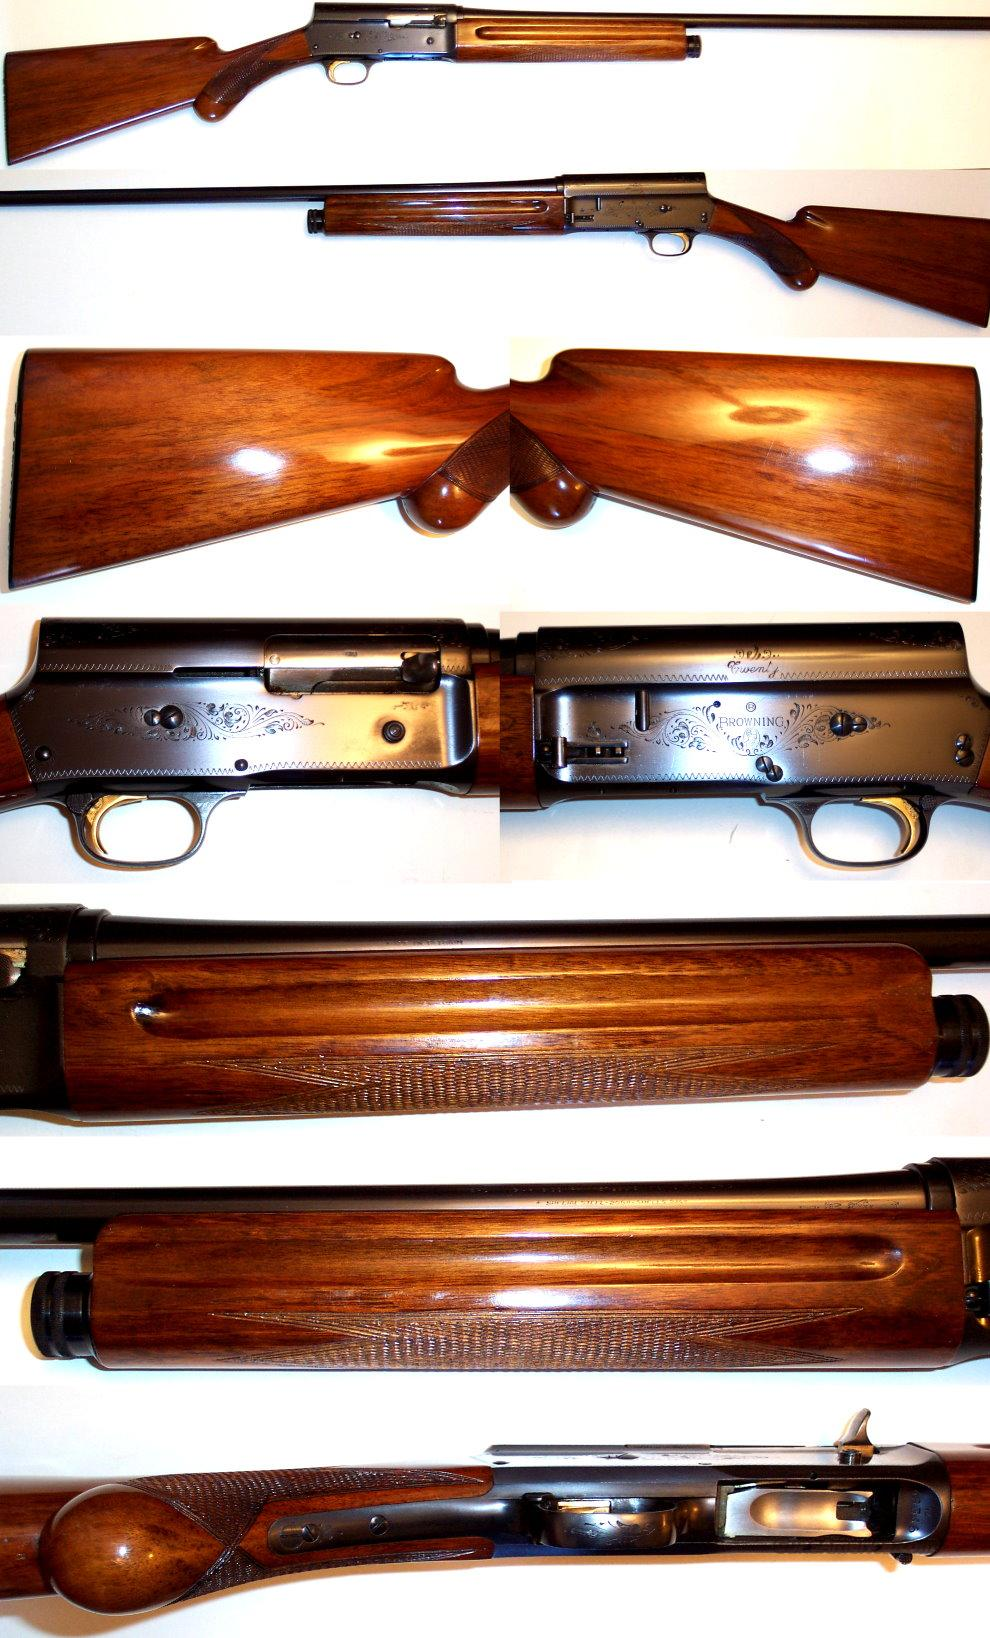 '61 Belgium Browning A5 20 gauge in excellent condition  Guns > Shotguns > Browning Shotguns > Autoloaders > Hunting